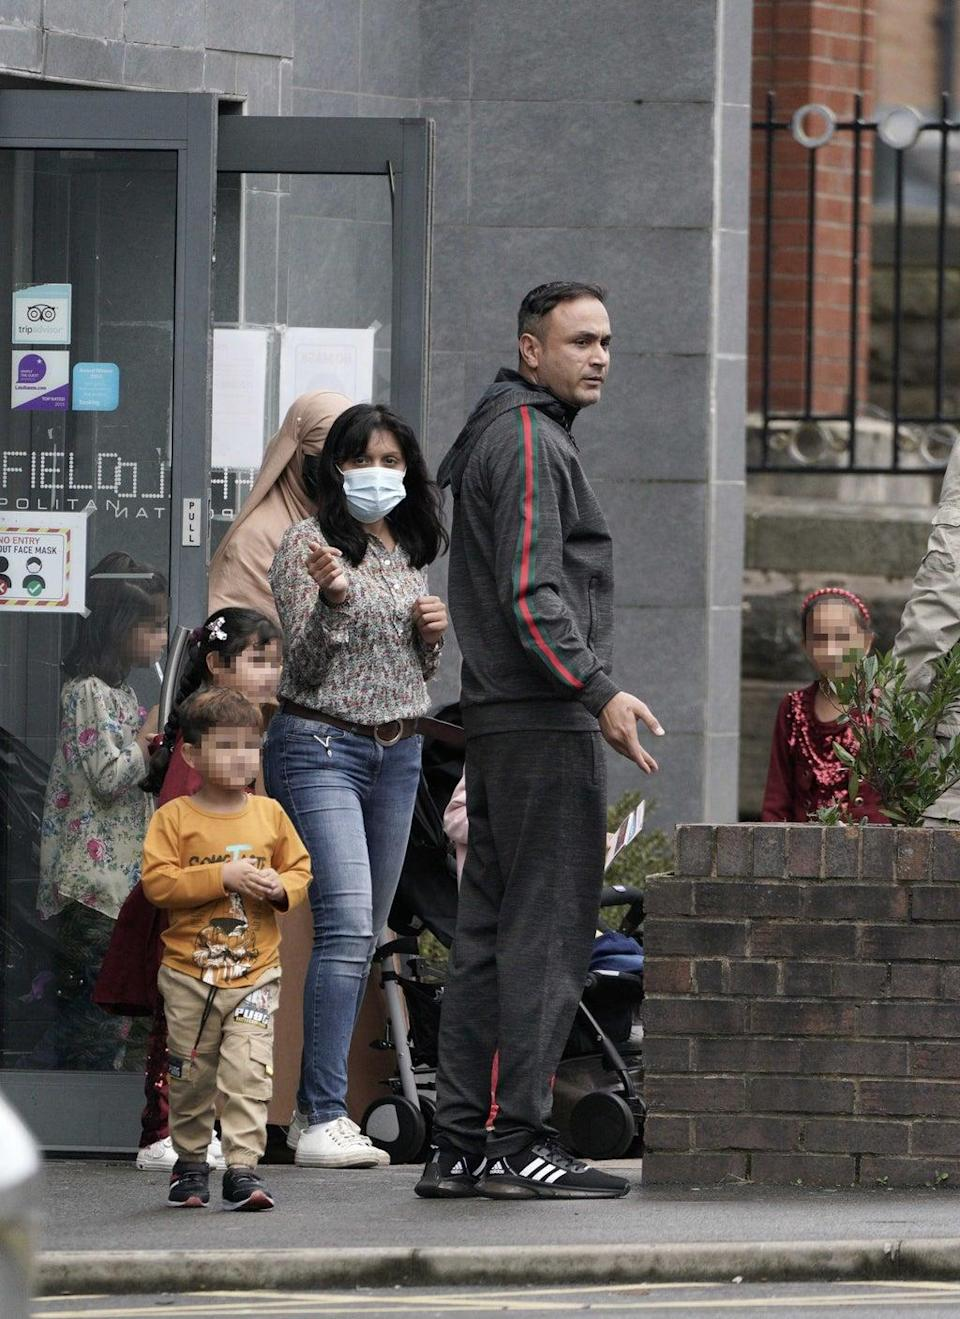 People leave the Sheffield Metropolitan Hotel in Blonk Street, where a five year old boy, an Afghan refugee whose family recently fled the Taliban, died after he fell from a window on Wednesday. (Peter Byrne/PA) (PA Wire)